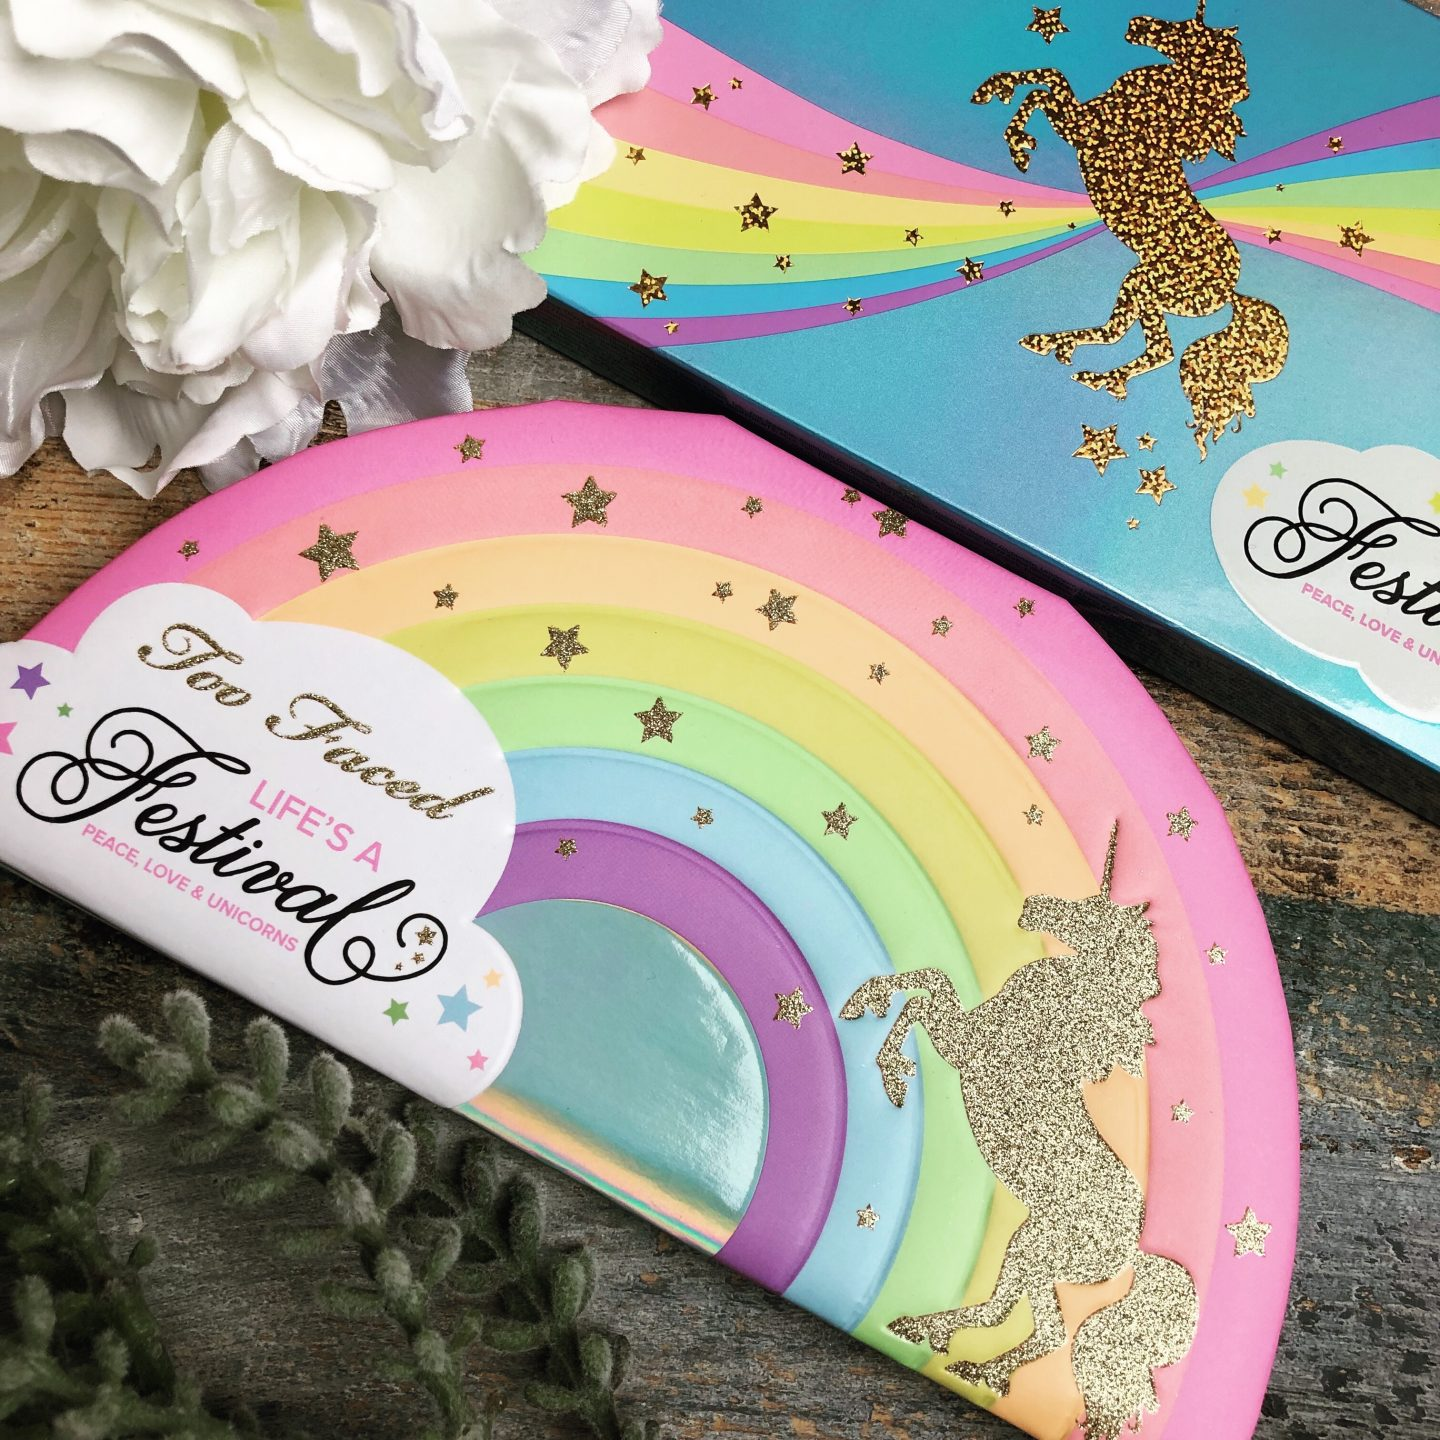 REVIEW | Too Faced Life's a Festival Range